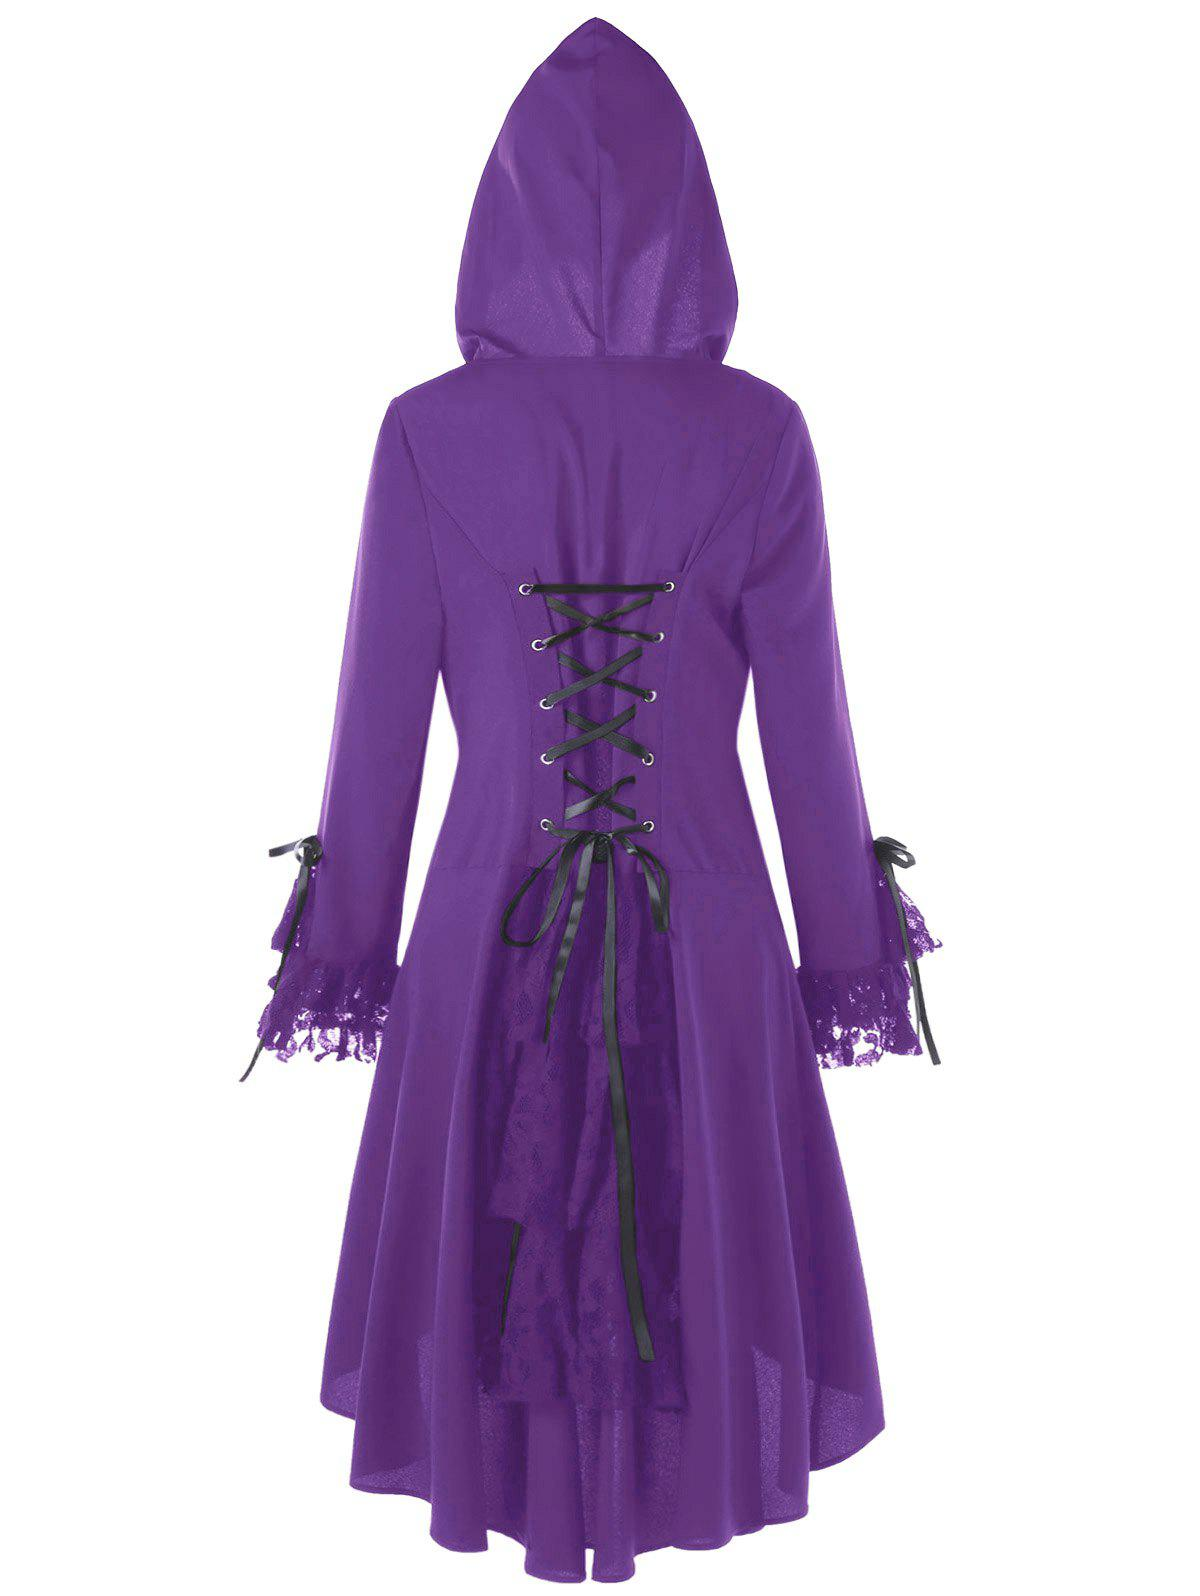 Plus Size Hooded High Low Lace Panel Lace Up CoatWOMEN<br><br>Size: XL; Color: PURPLE; Clothes Type: Others; Material: Cotton,Polyester; Type: Asymmetric Length; Shirt Length: Long; Sleeve Length: Full; Collar: Hooded; Closure Type: Single Breasted; Pattern Type: Others; Embellishment: Criss-Cross,Lace,Panel; Style: Fashion; Season: Winter; With Belt: No; Weight: 0.4700kg; Package Contents: 1 x Coat;